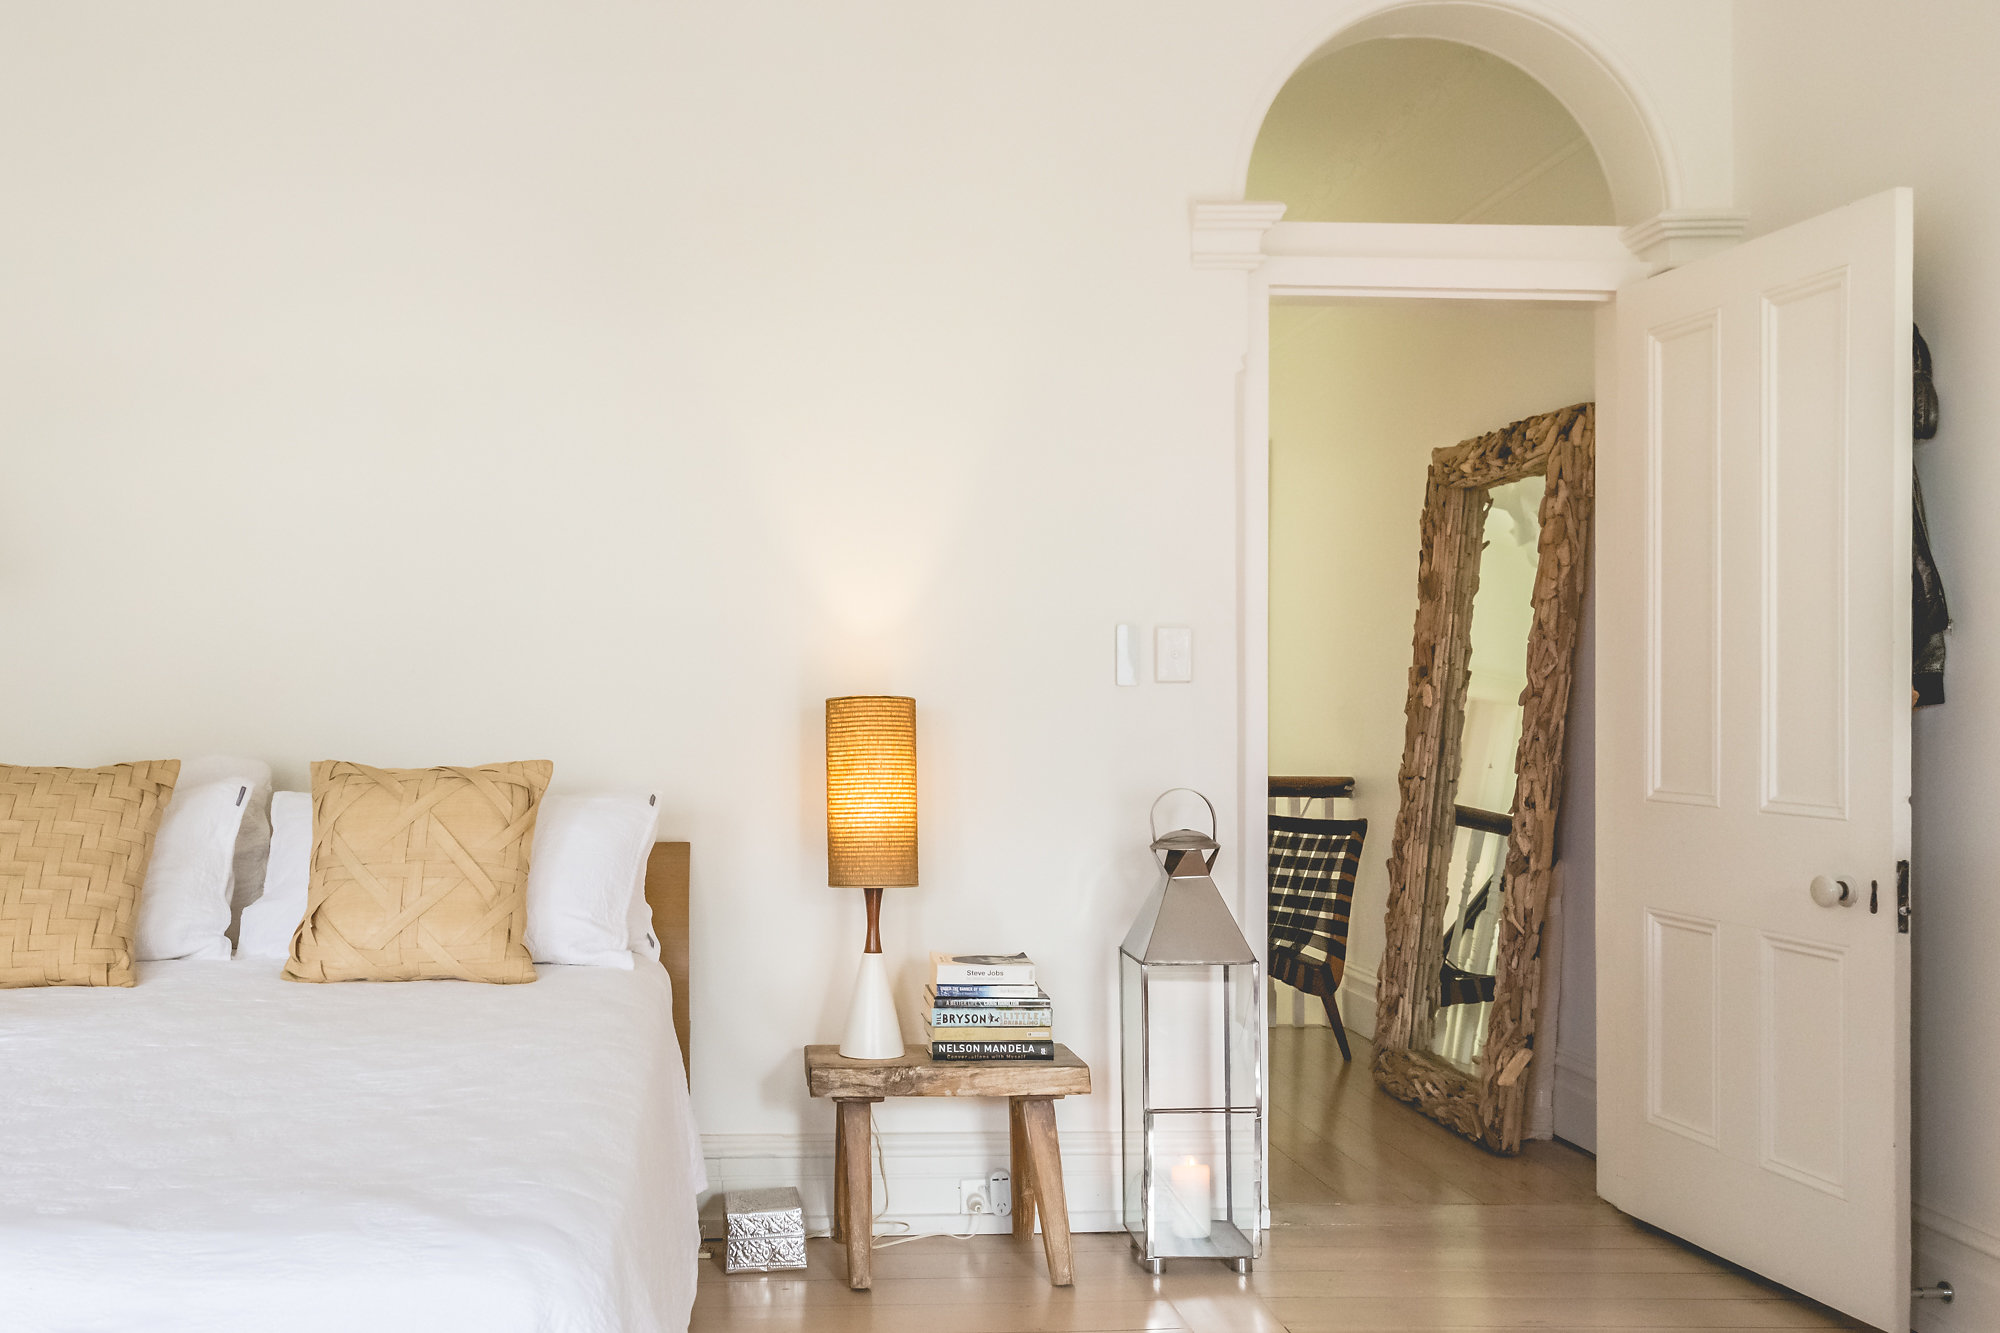 When home feels like holidays. The master bedroom is so tranquil and beautiful. Pass me a book!